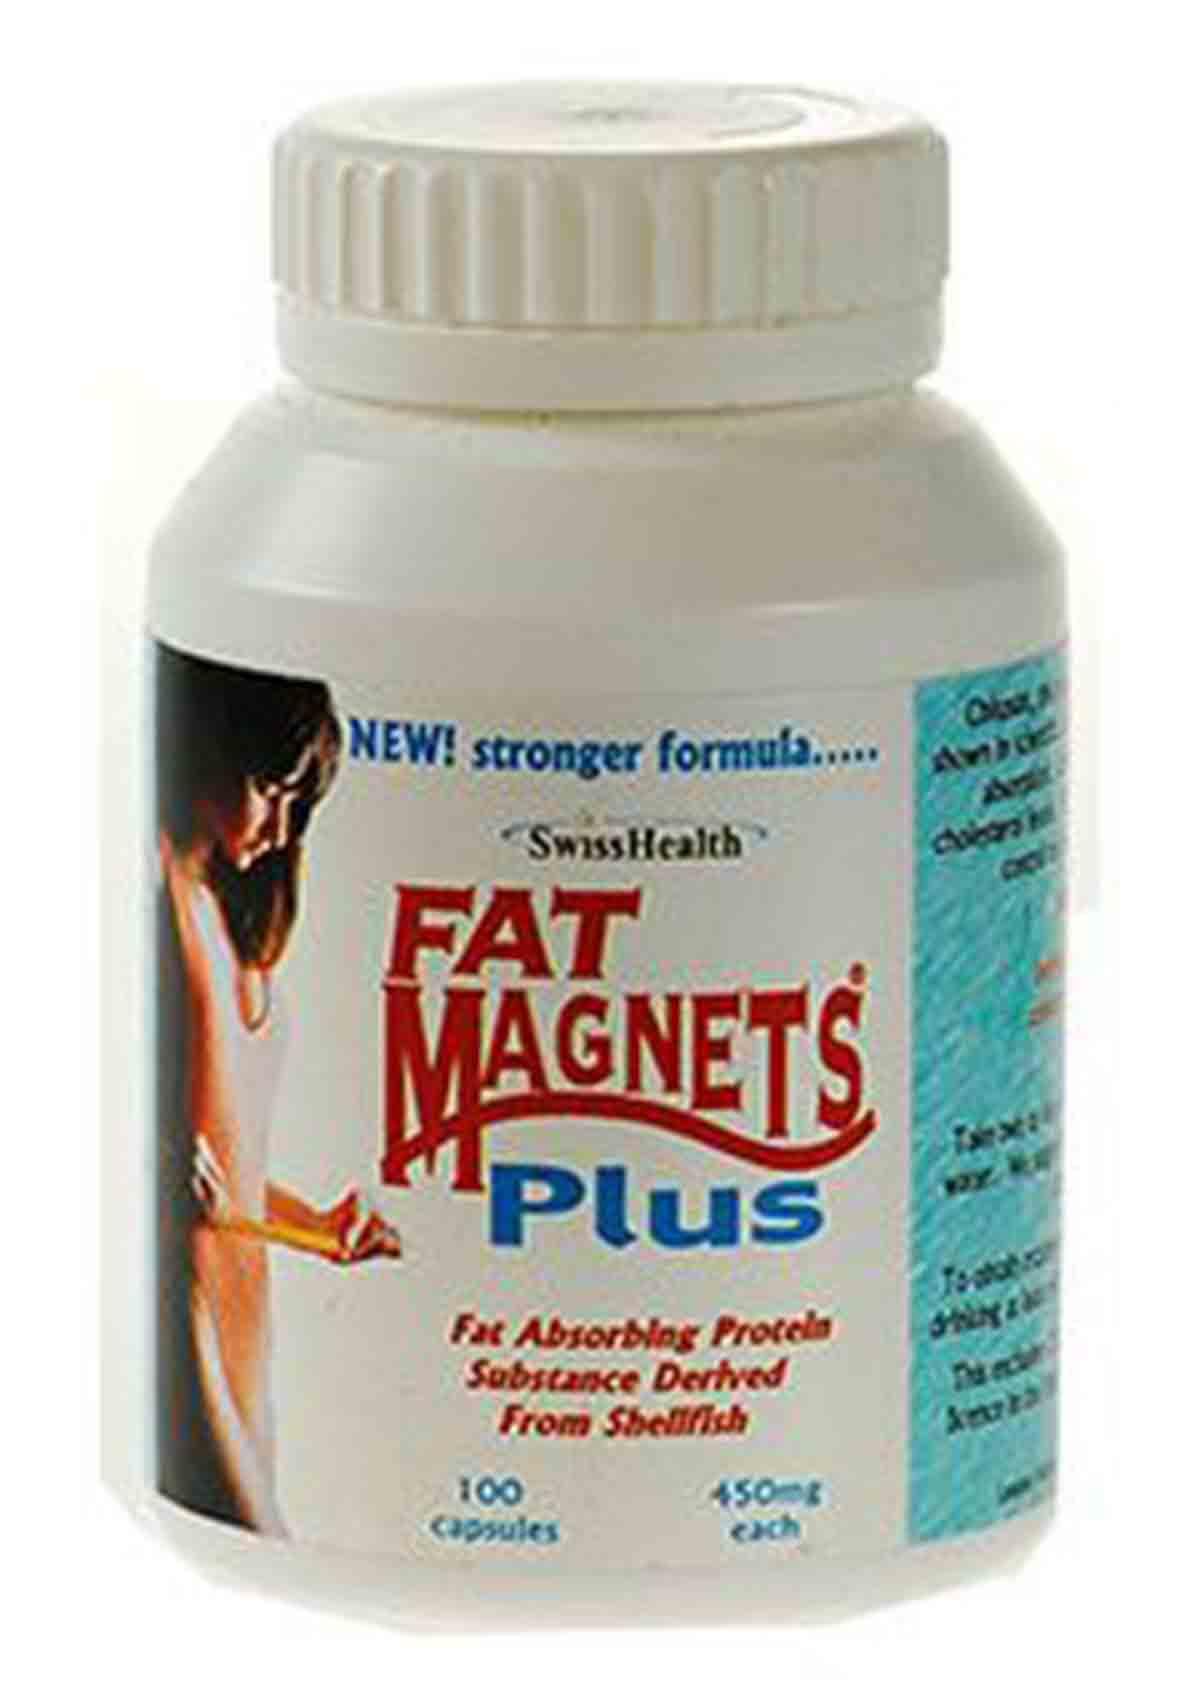 Fat Magnets Plus